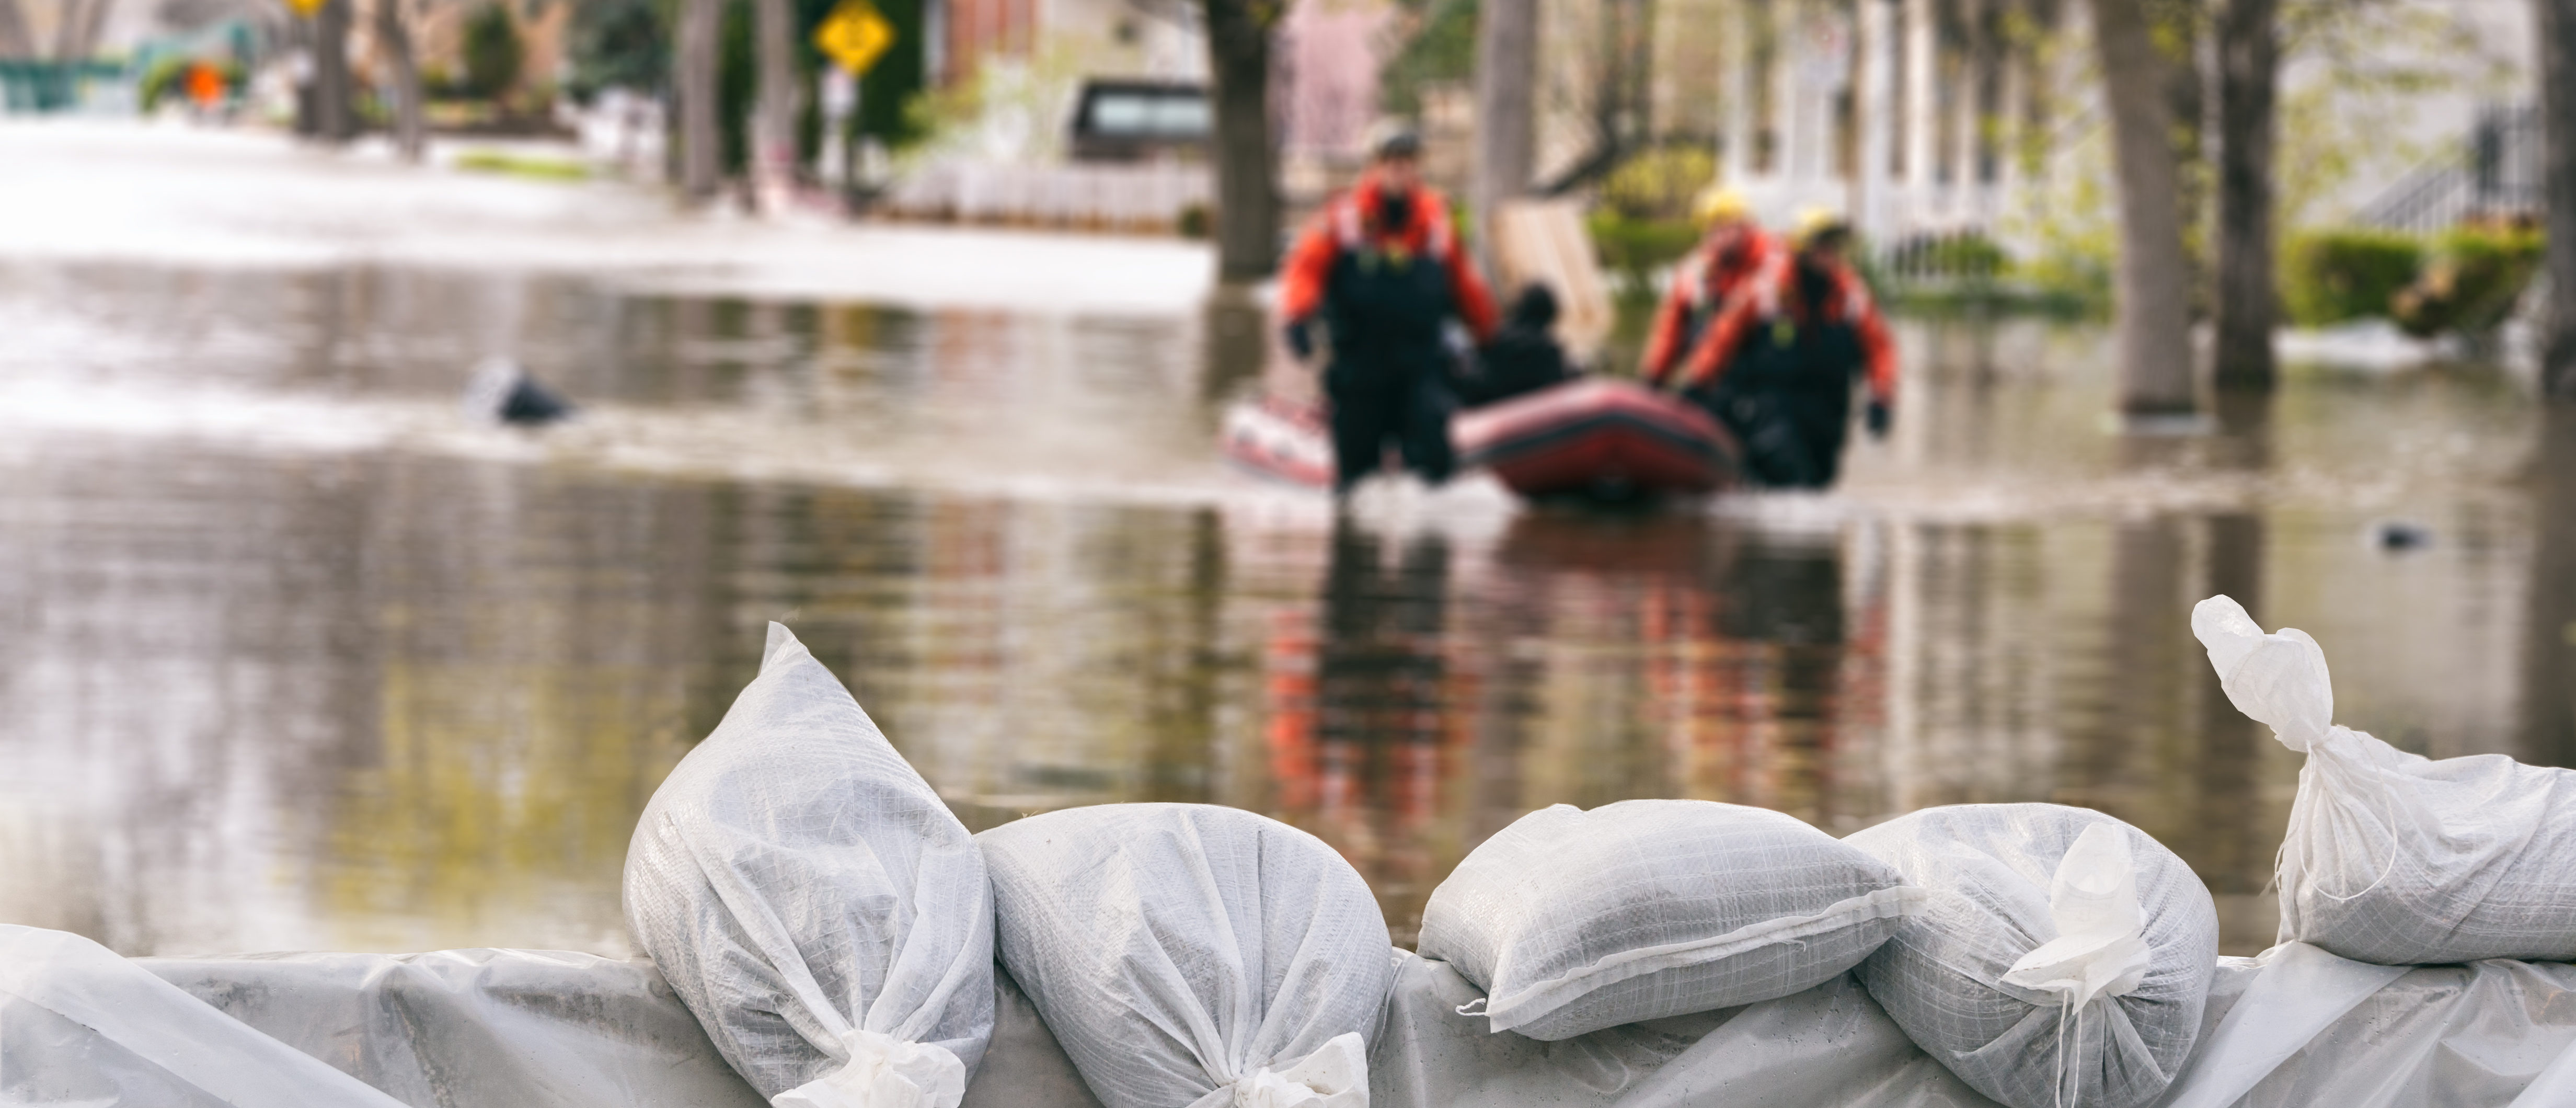 Flood Protection Sandbags with flooded homes in the background (Montage). (Marc Bruxelle/Shutterstock)